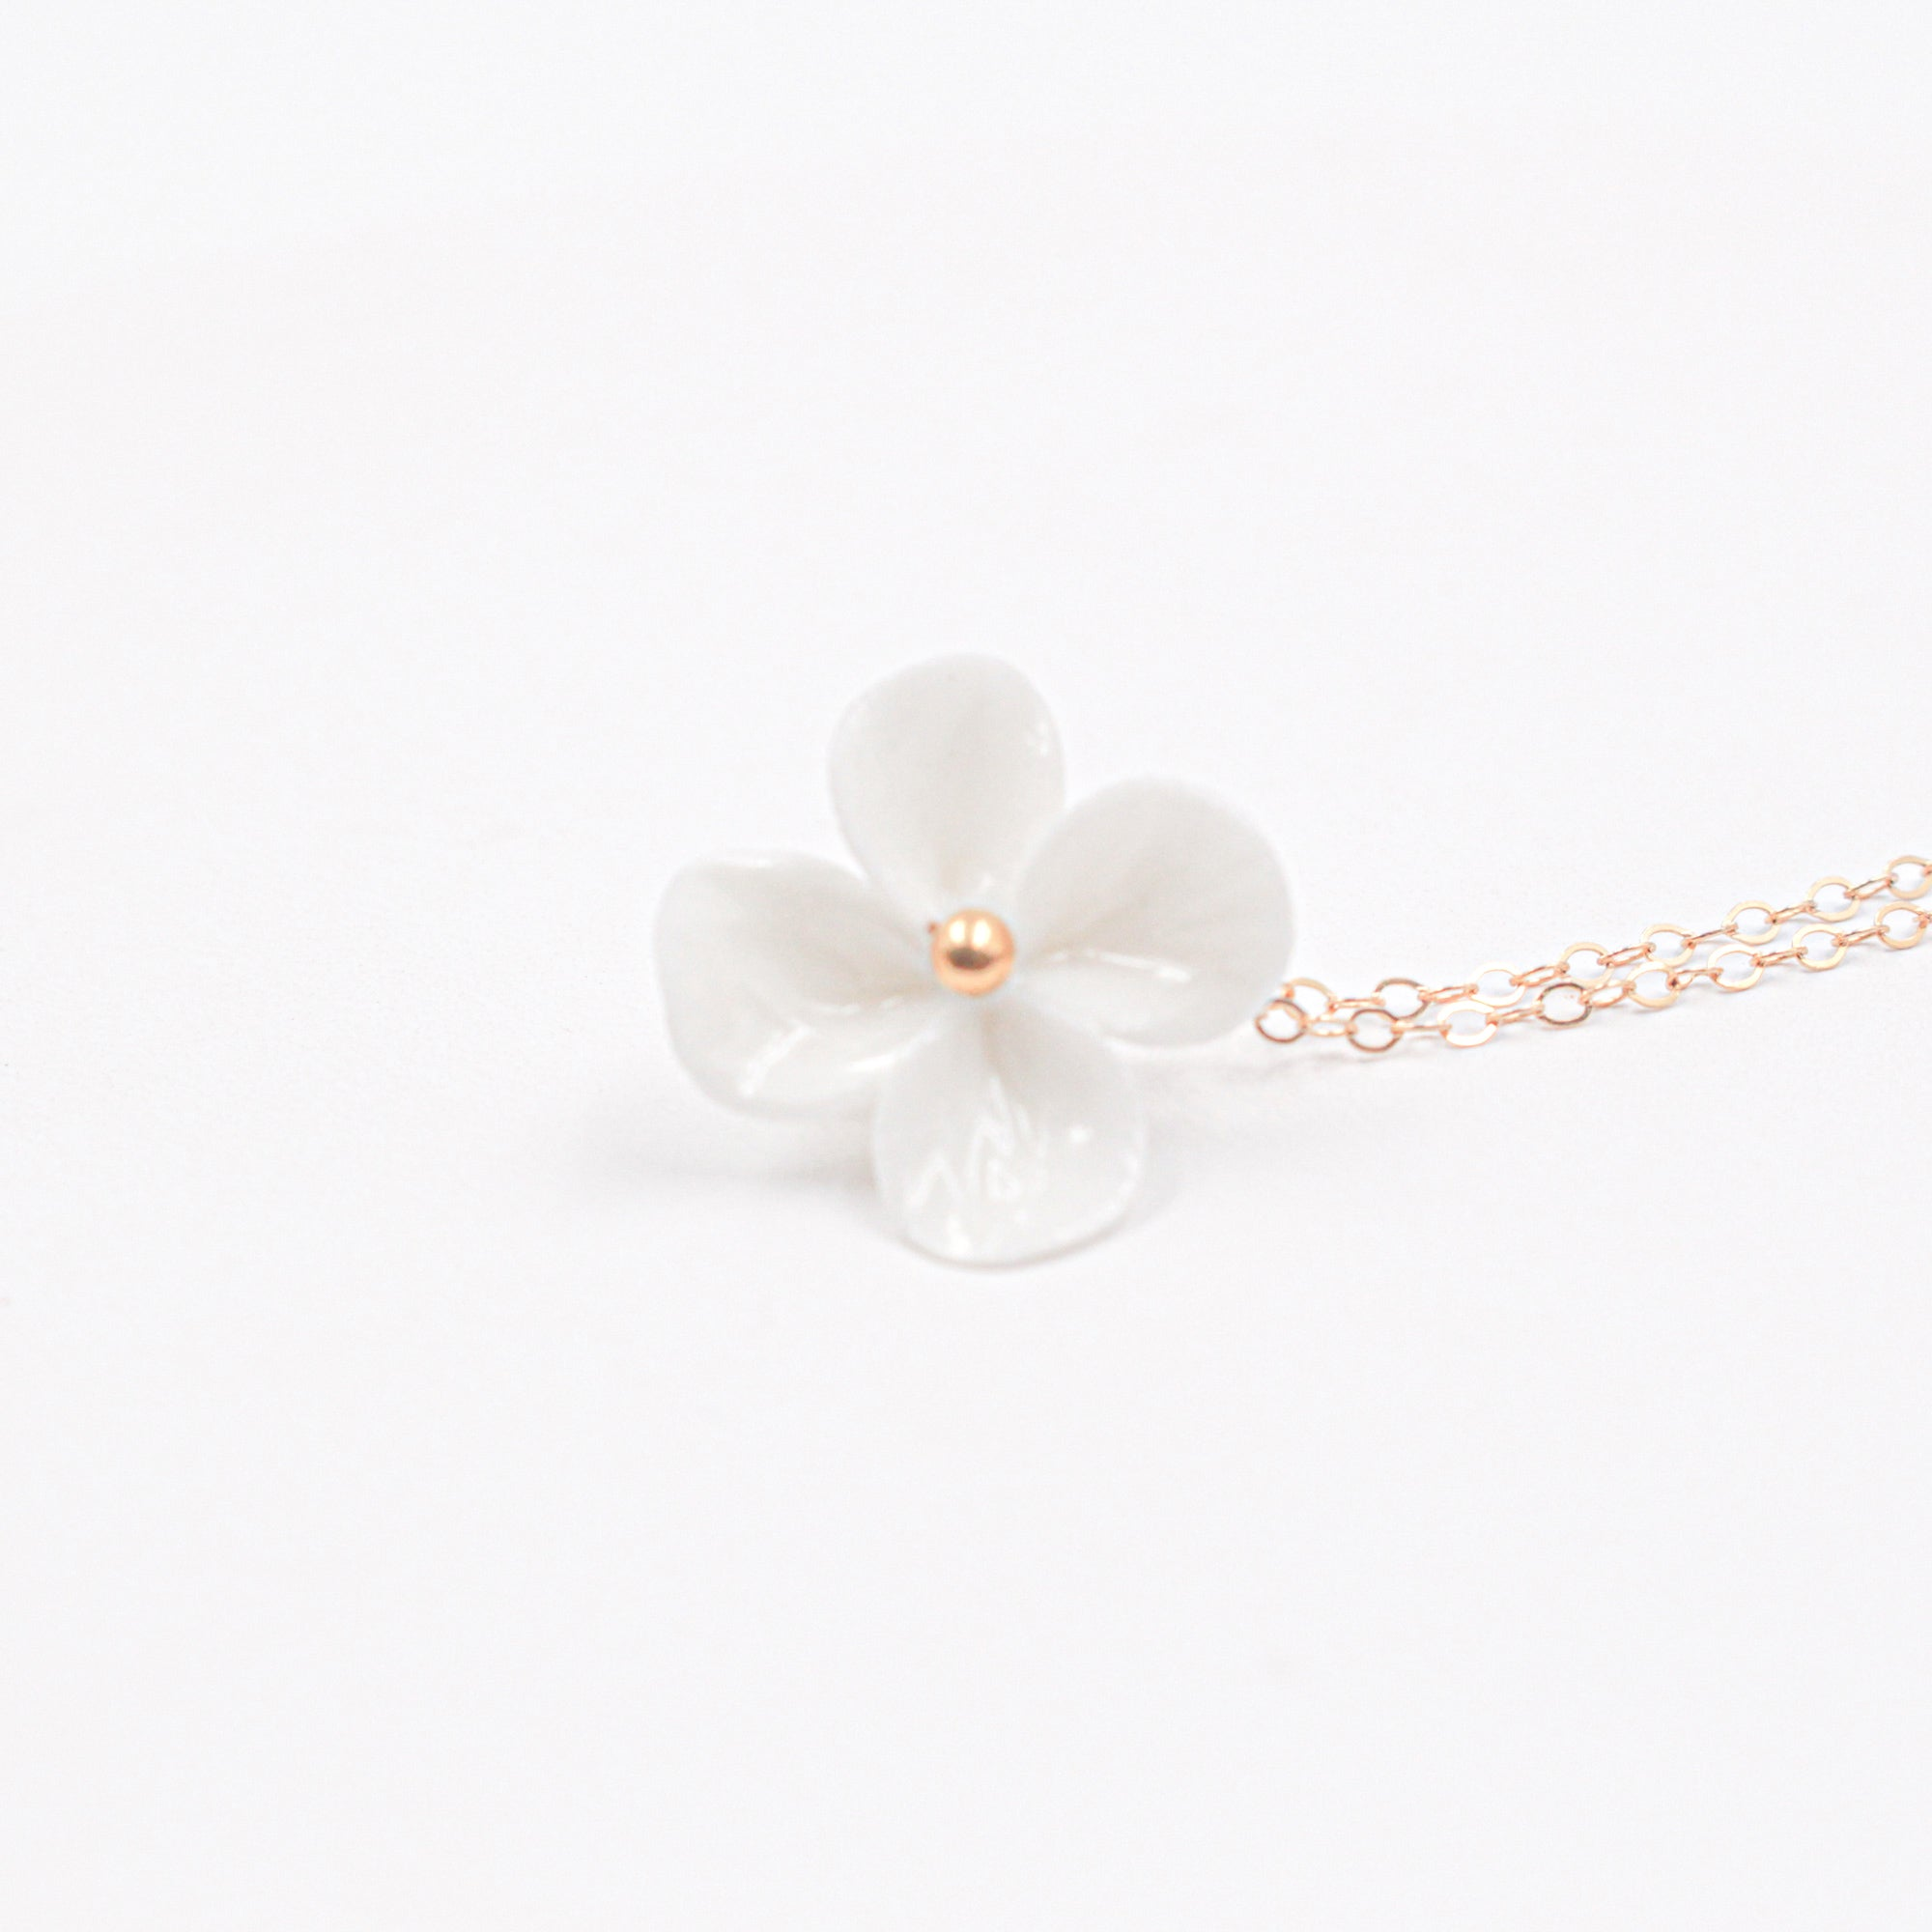 Porcelain Clover Necklace - Minimalist Jewelry by Alain Granell - Made in France